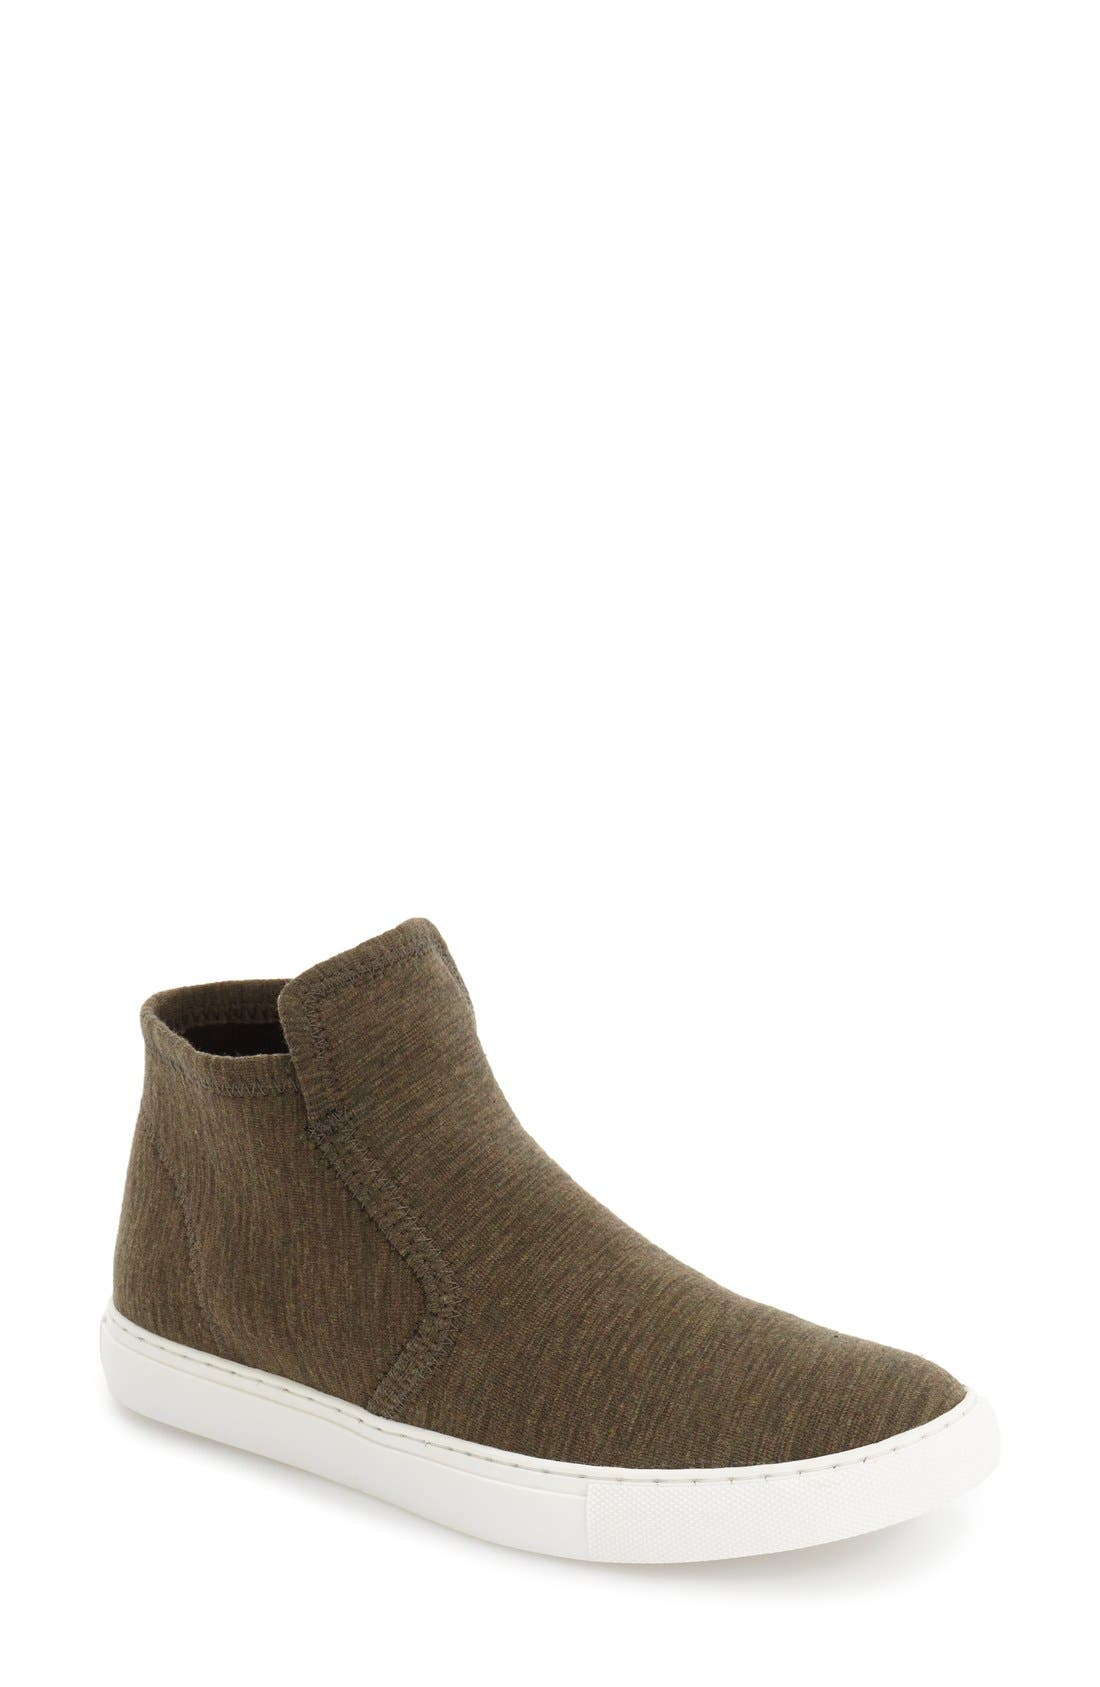 Alternate Image 1 Selected - Reaction Kenneth Cole 'Kam-Ping' High Top Sneaker (Women)